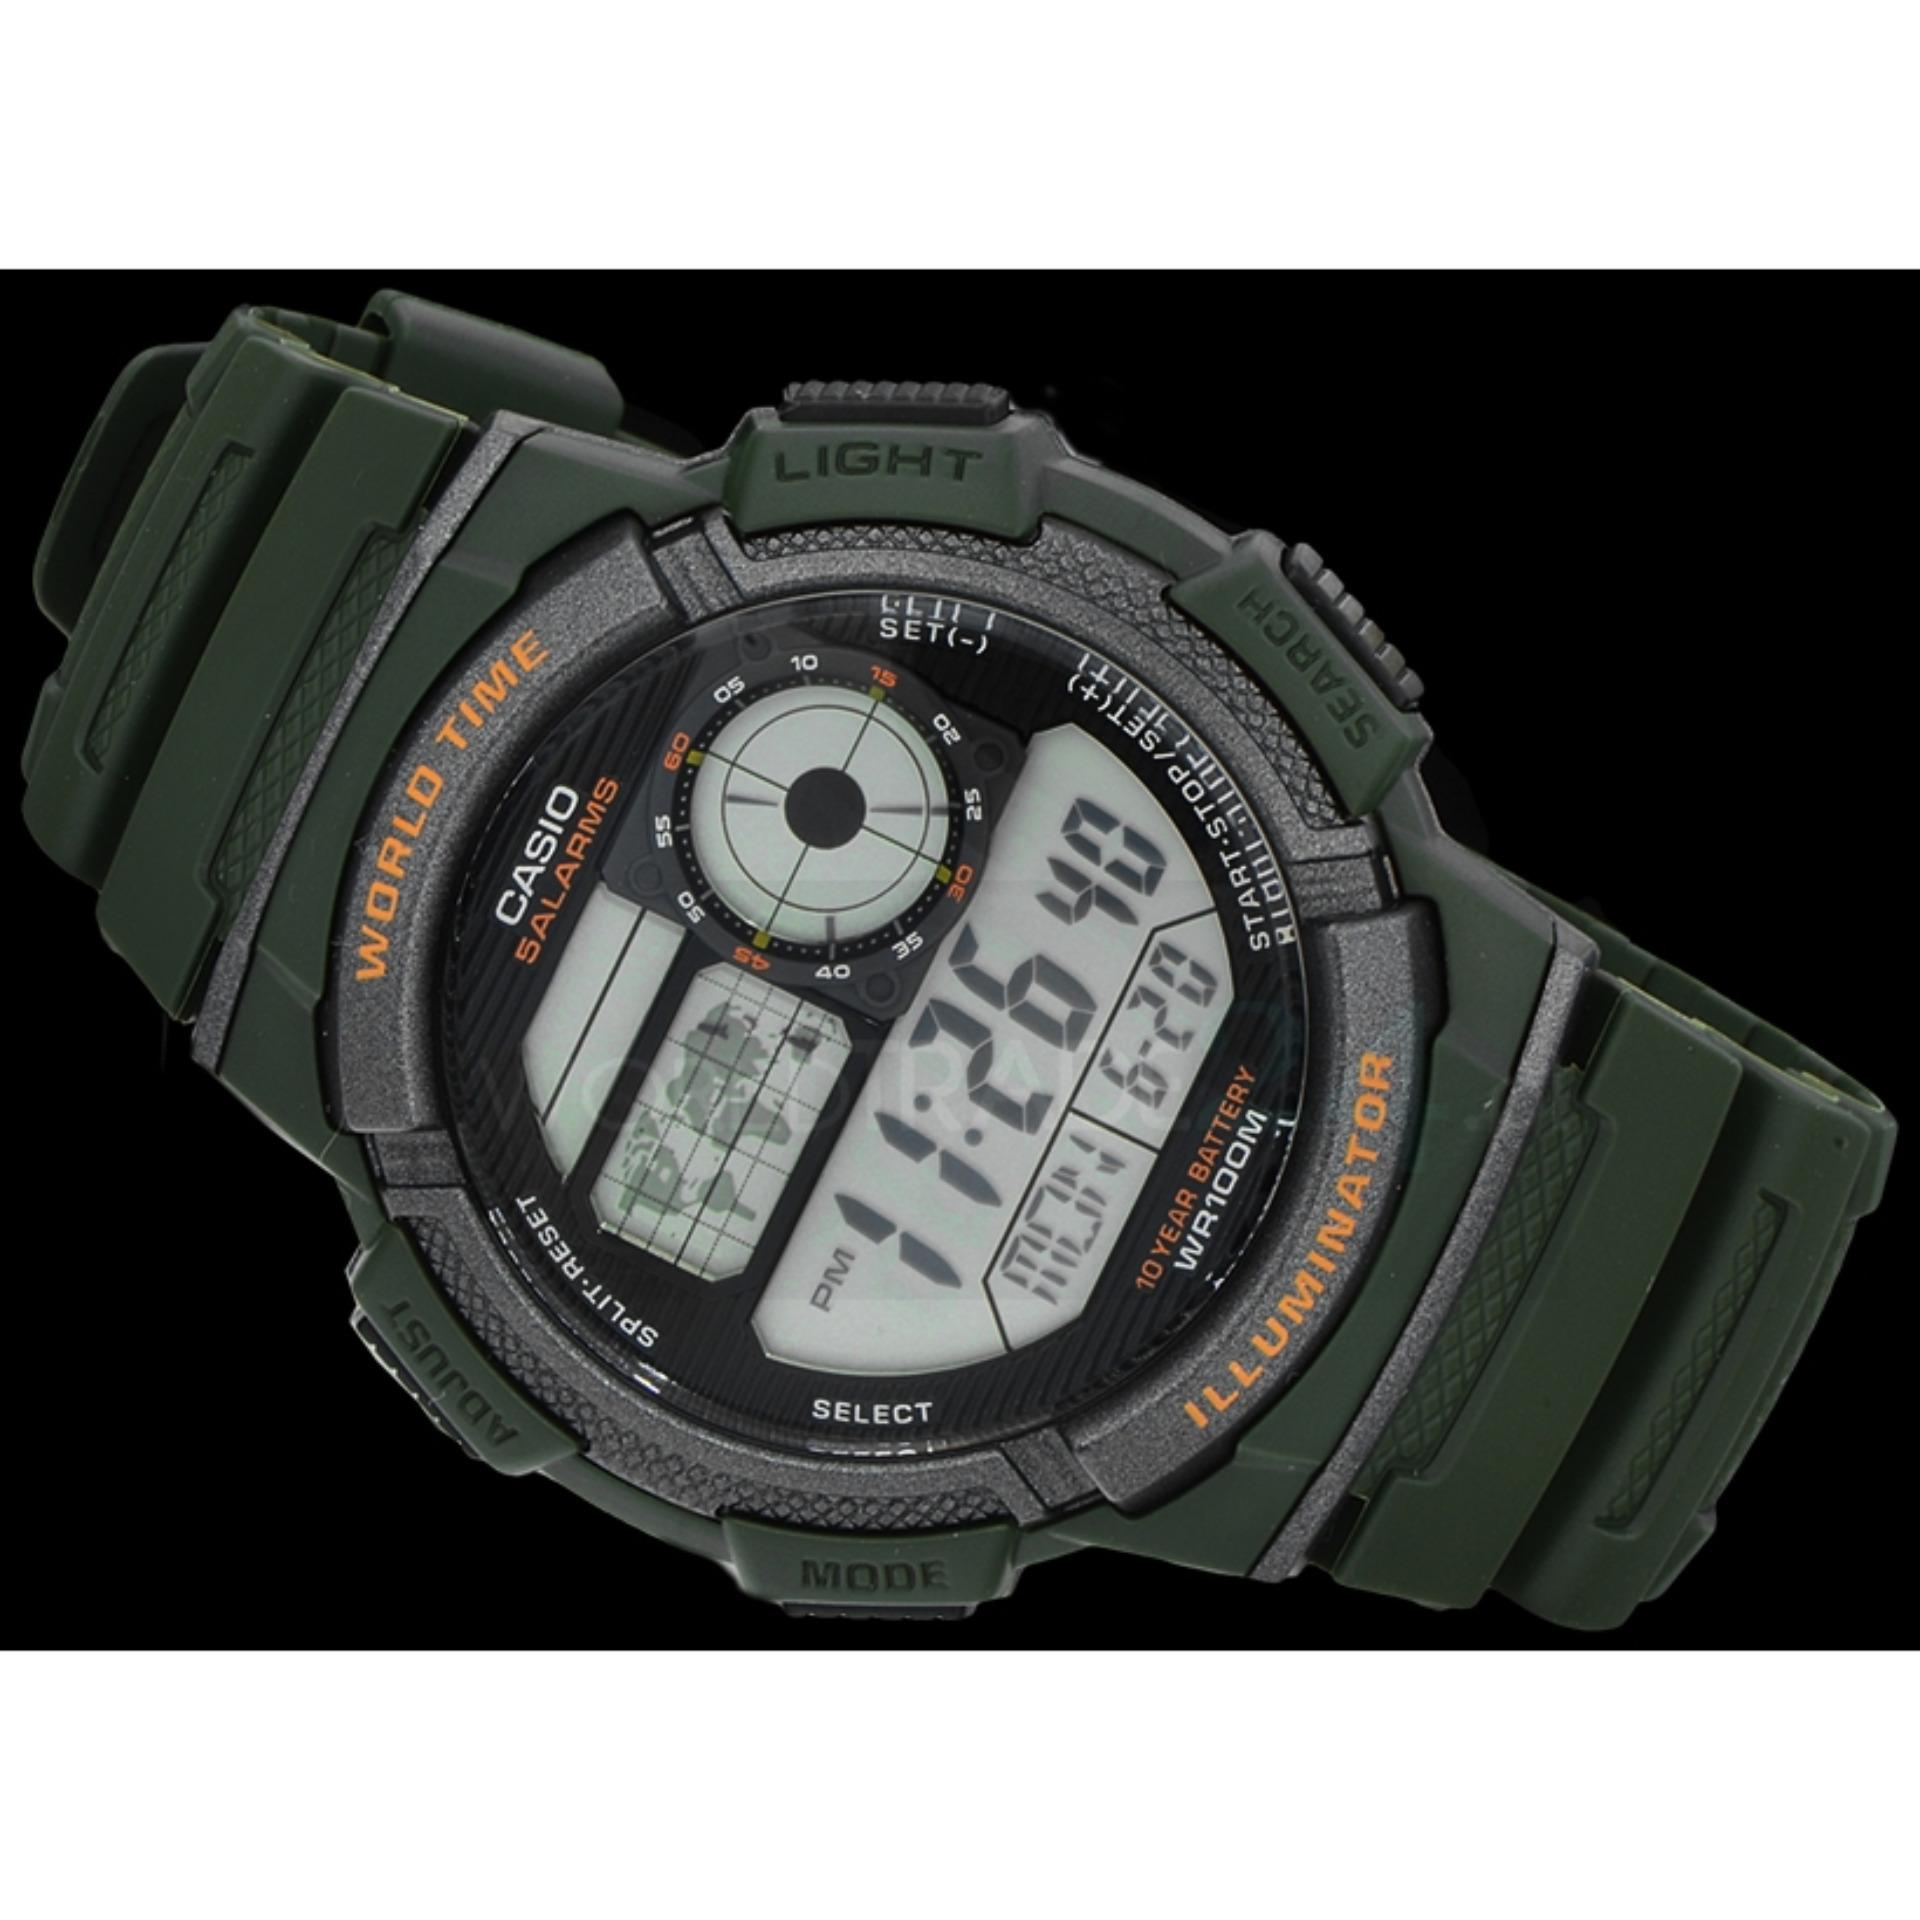 CASIO Illuminator AE-1000W-2AVDF - Jam Tangan Pria - Tali Karet - Digital  Movement - Biru  fb5dfd4c48